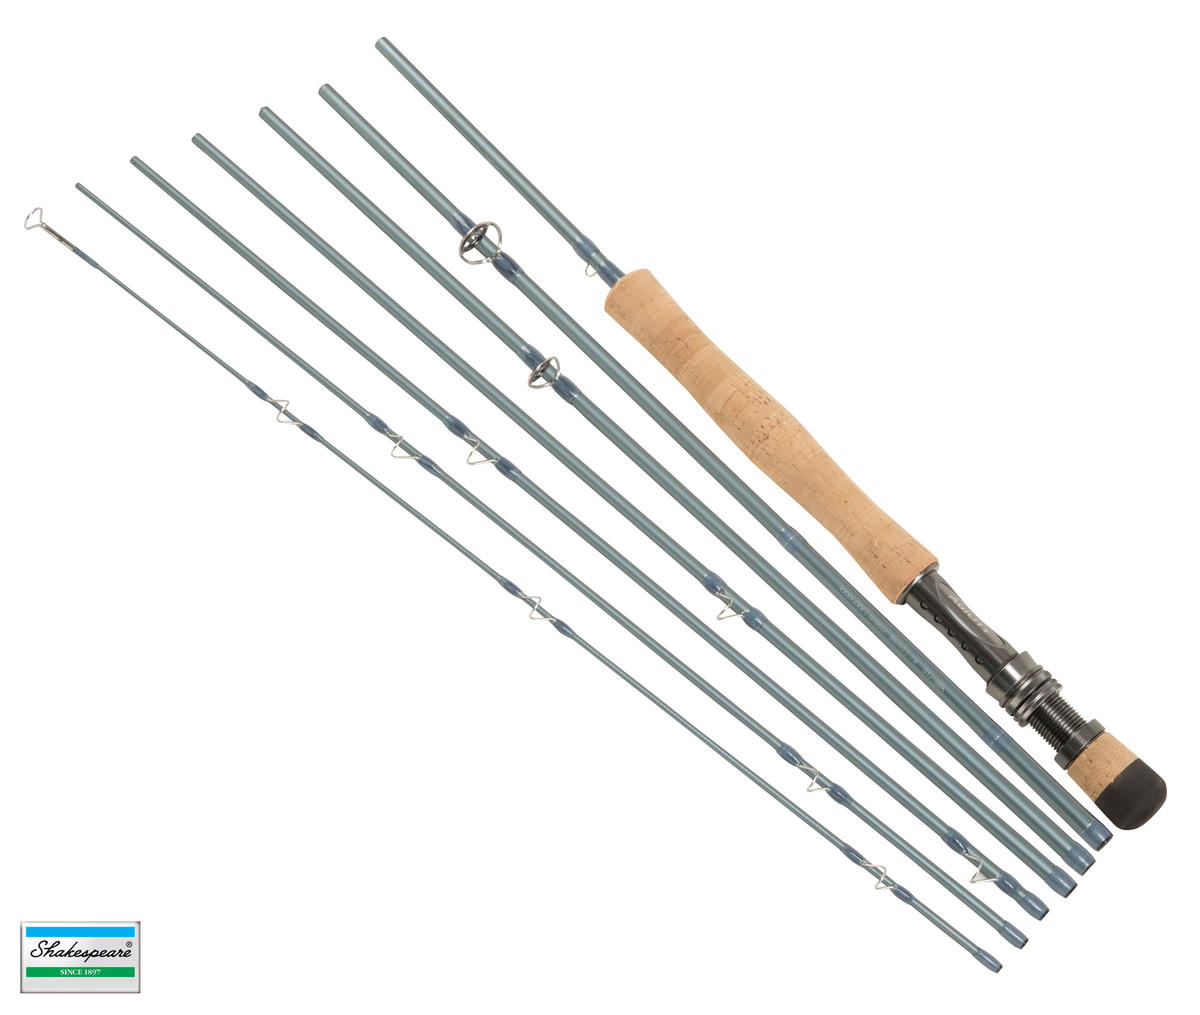 New Shakespeare Agility 2 EXP Travel Fly Fishing Rod 9'6' #7 7pc 1436386